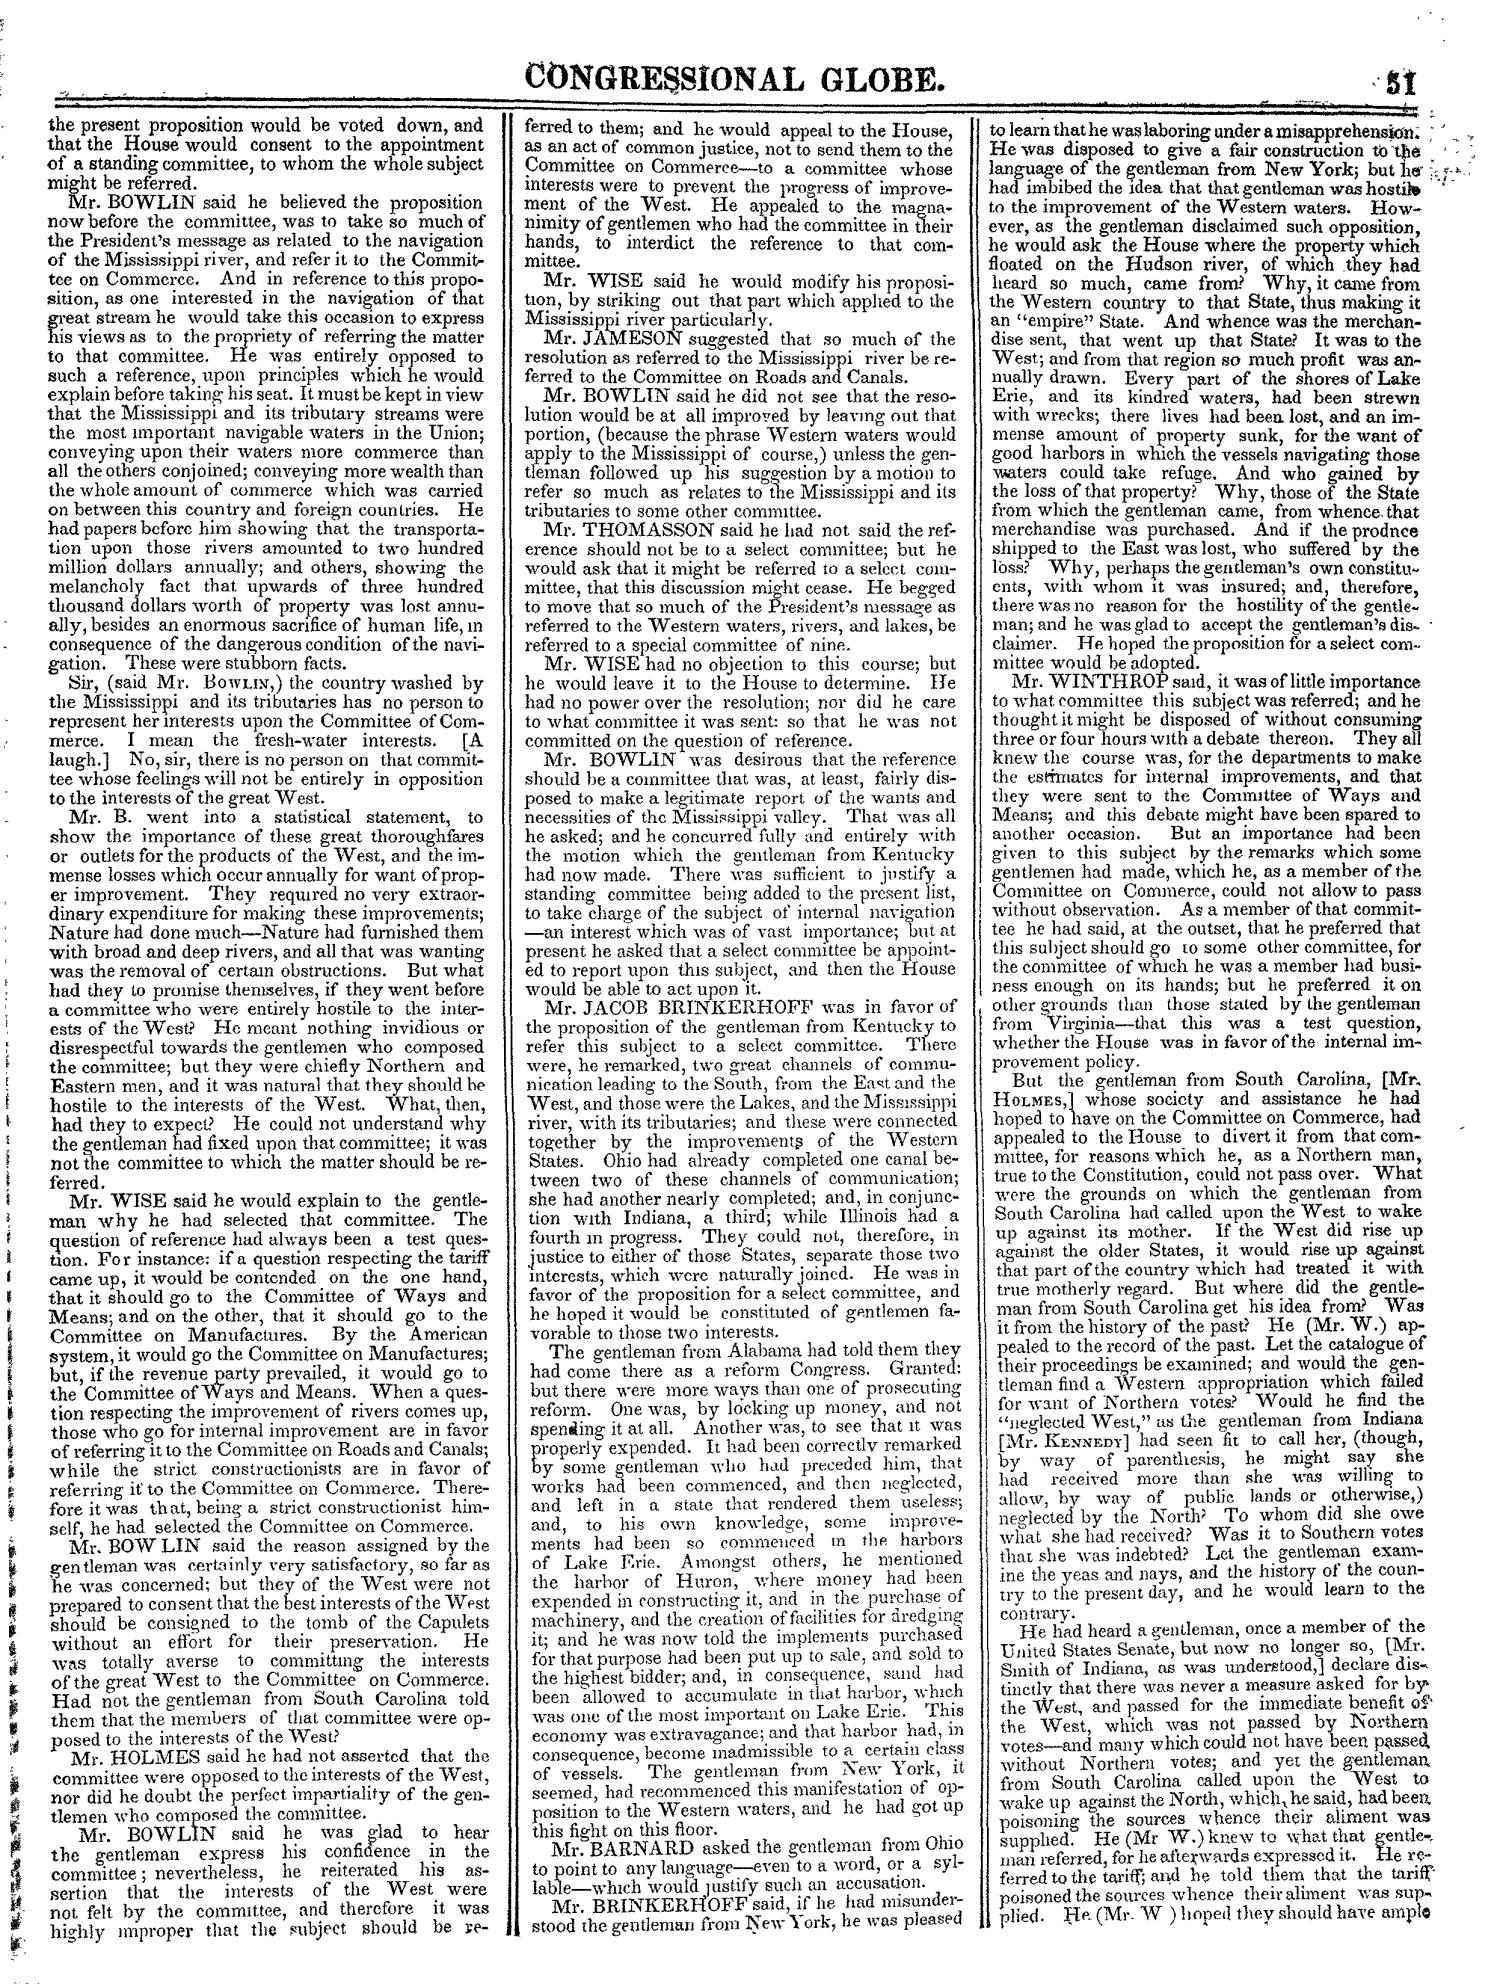 The Congressional Globe, Volume 13, Part 1: Twenty-Eighth Congress, First Session                                                                                                      51